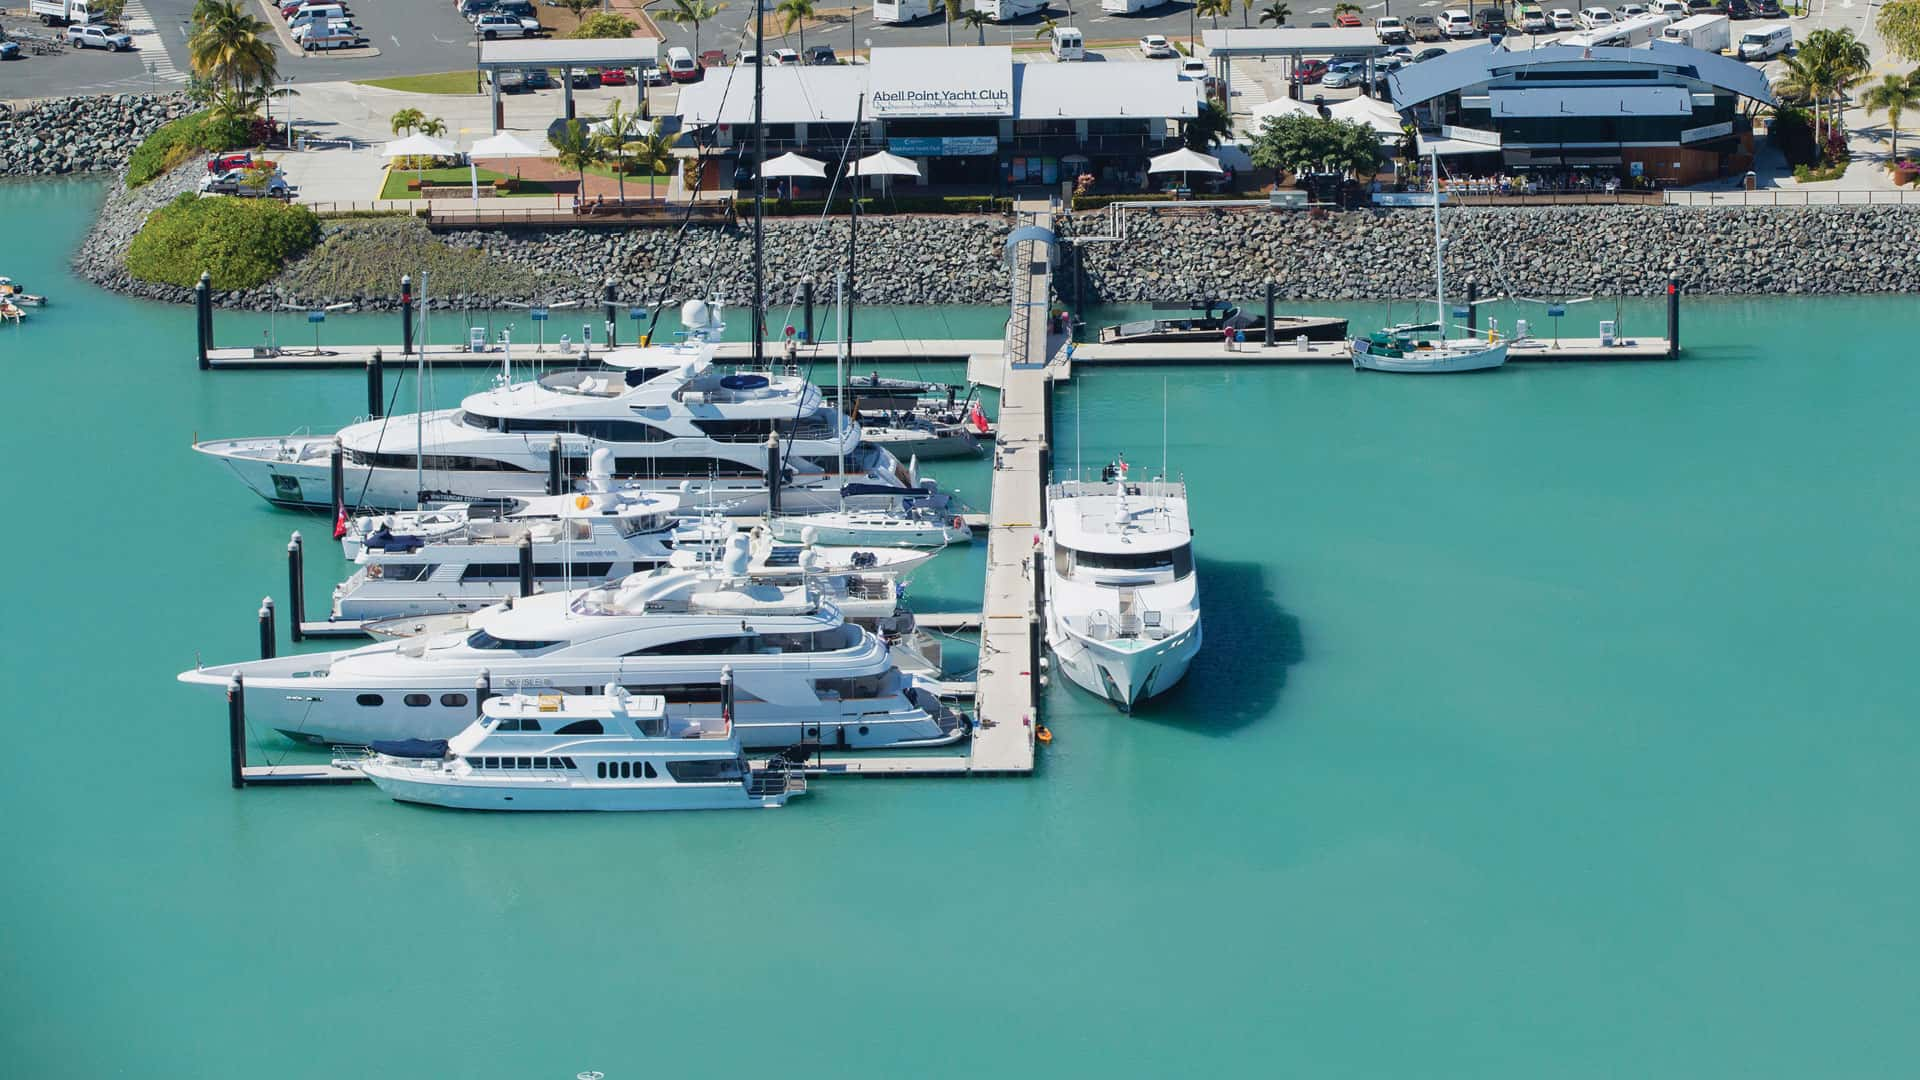 aerial of private superyacht arm at Coral Sea Marina with superyachts berthed